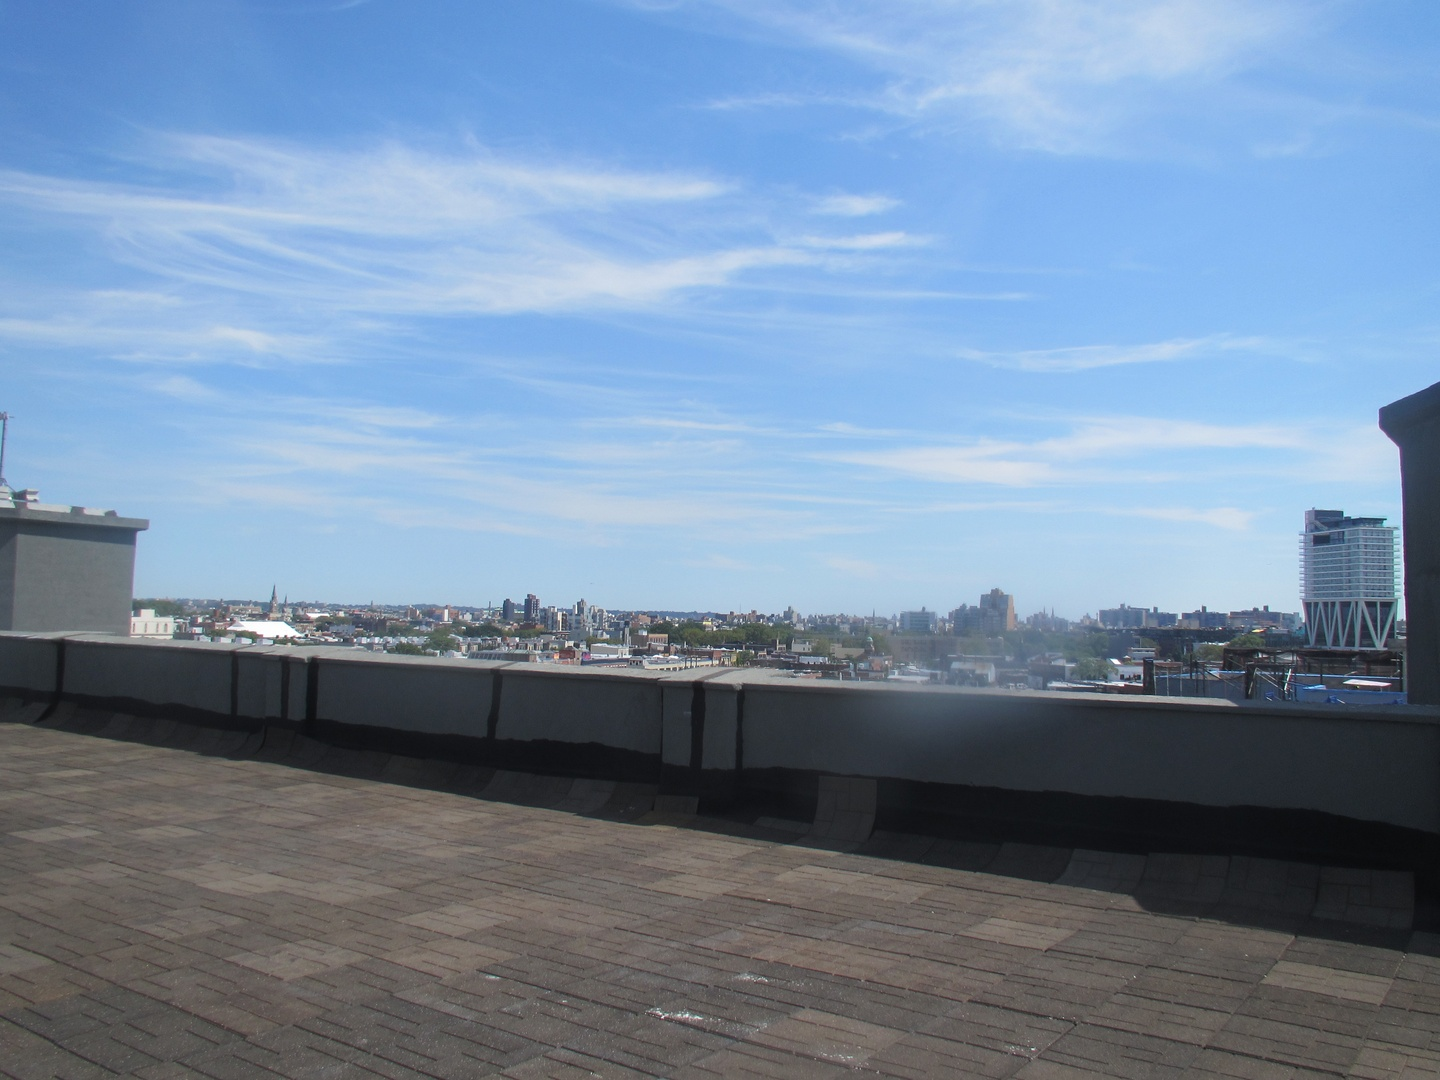 NYC corporate event venues Rooftop Seret Studios - Green Point Rooftop image 0